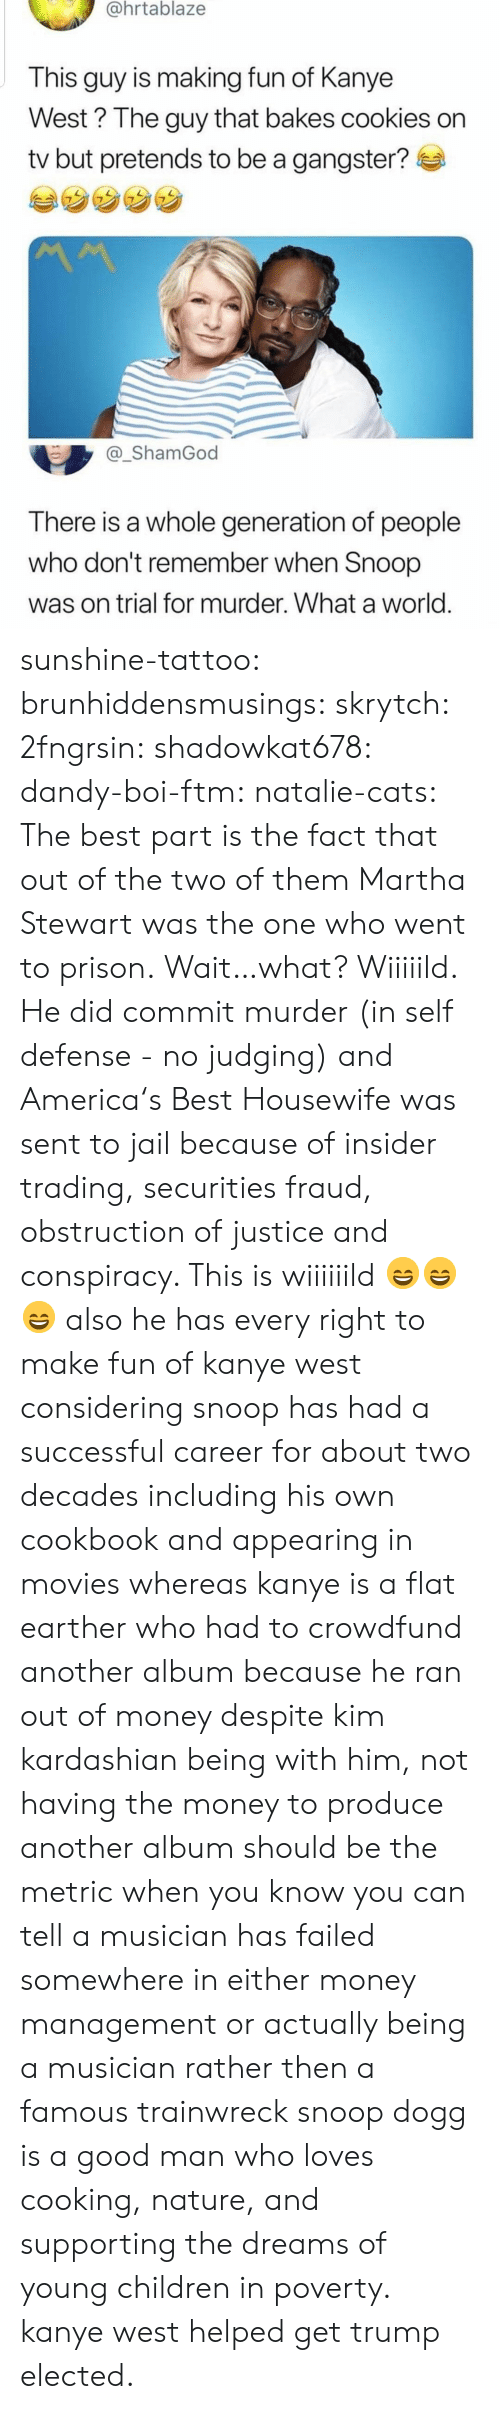 Commit: @hrtablaze  This guy is making fun of Kanye  West? The guy that bakes cookies on  tv but pretends to be a gangster?  _ShamGod  There is a whole generation of people  who don't remember when Snoop  was on trial for murder. What a world sunshine-tattoo: brunhiddensmusings:  skrytch:  2fngrsin:  shadowkat678:  dandy-boi-ftm:   natalie-cats:   The best part is the fact that out of the two of them Martha Stewart was the one who went to prison.   Wait…what?   Wiiiiild. He did commit murder (in self defense - no judging) and America's Best Housewife was sent to jail because of insider trading, securities fraud, obstruction of justice and conspiracy. This is wiiiiiild 😄😄😄    also he has every right to make fun of kanye west considering snoop has had a successful career for about two decades including his own cookbook and appearing in movies whereas kanye is a flat earther who had to crowdfund another album because he ran out of money despite kim kardashian being with him, not having the money to produce another album should be the metric when you know you can tell a musician has failed somewhere in either money management or actually being a musician rather then a famous trainwreck   snoop dogg is a good man who loves cooking, nature, and supporting the dreams of young children in poverty. kanye west helped get trump elected.